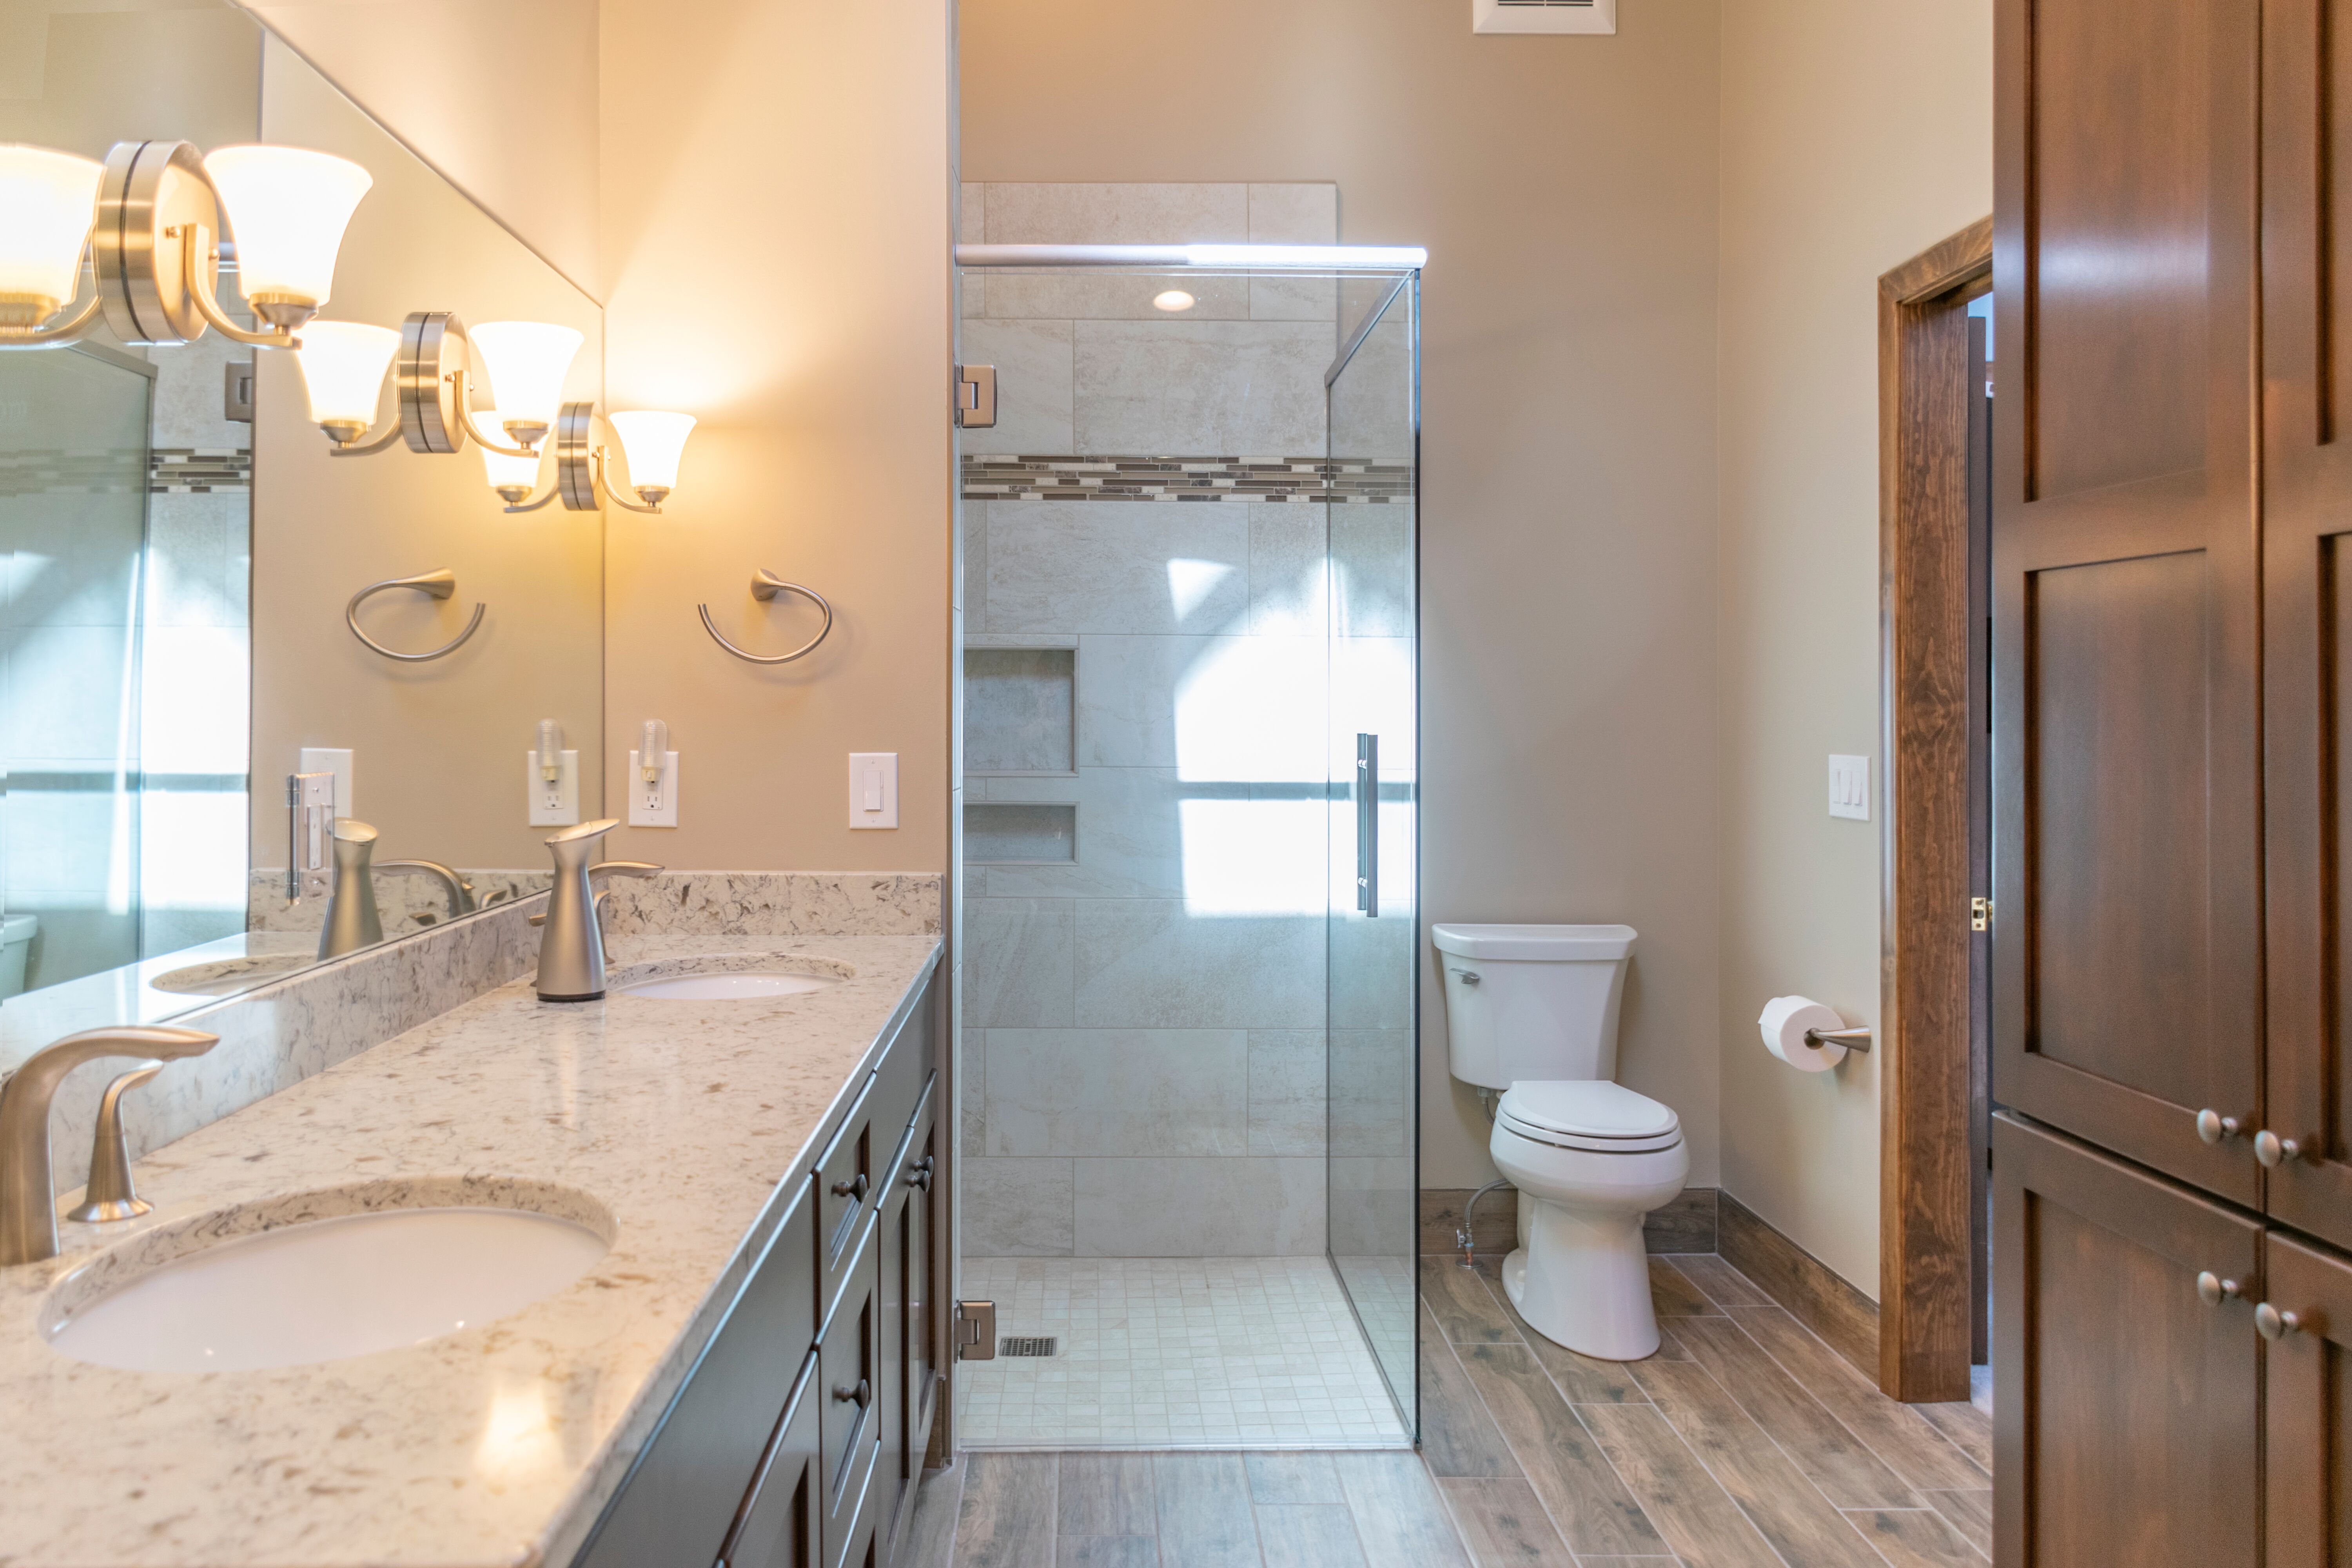 Washington Township Bathroom Remodeling Contractor